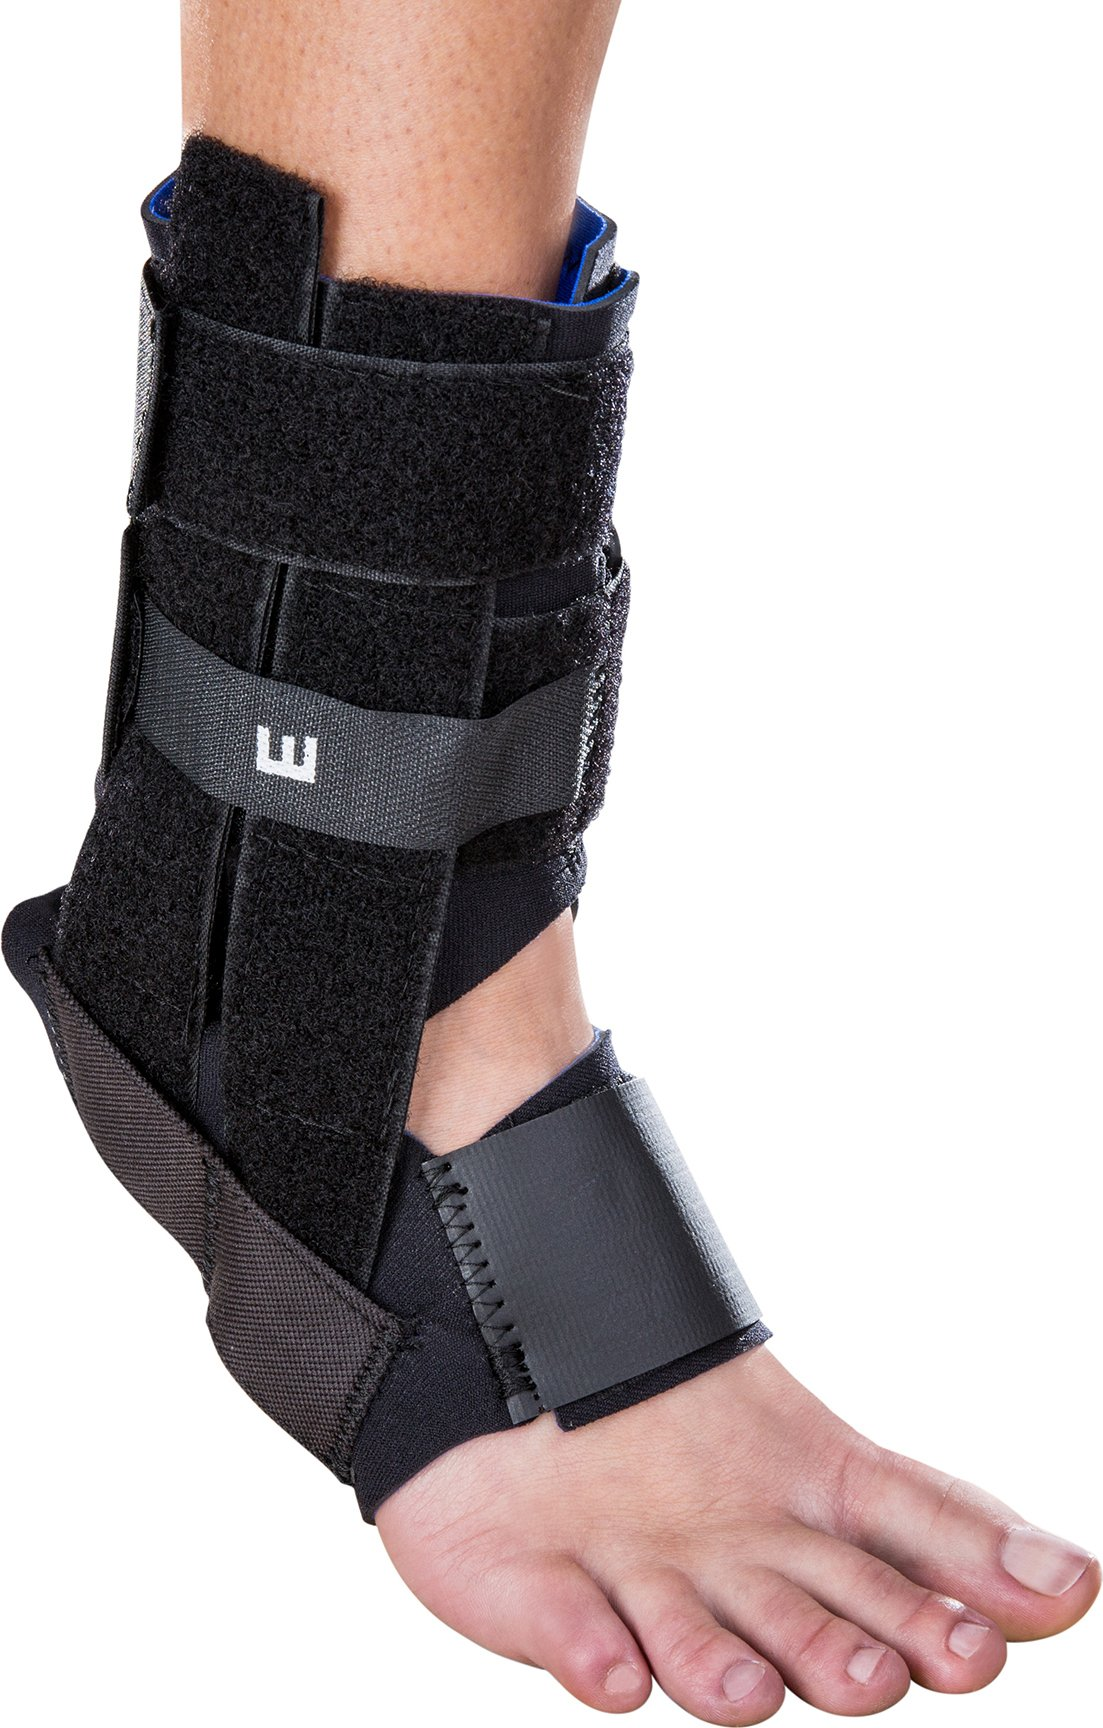 DonJoy RocketSoc Ankle Support Brace: Drytex, Right Foot, X-Large